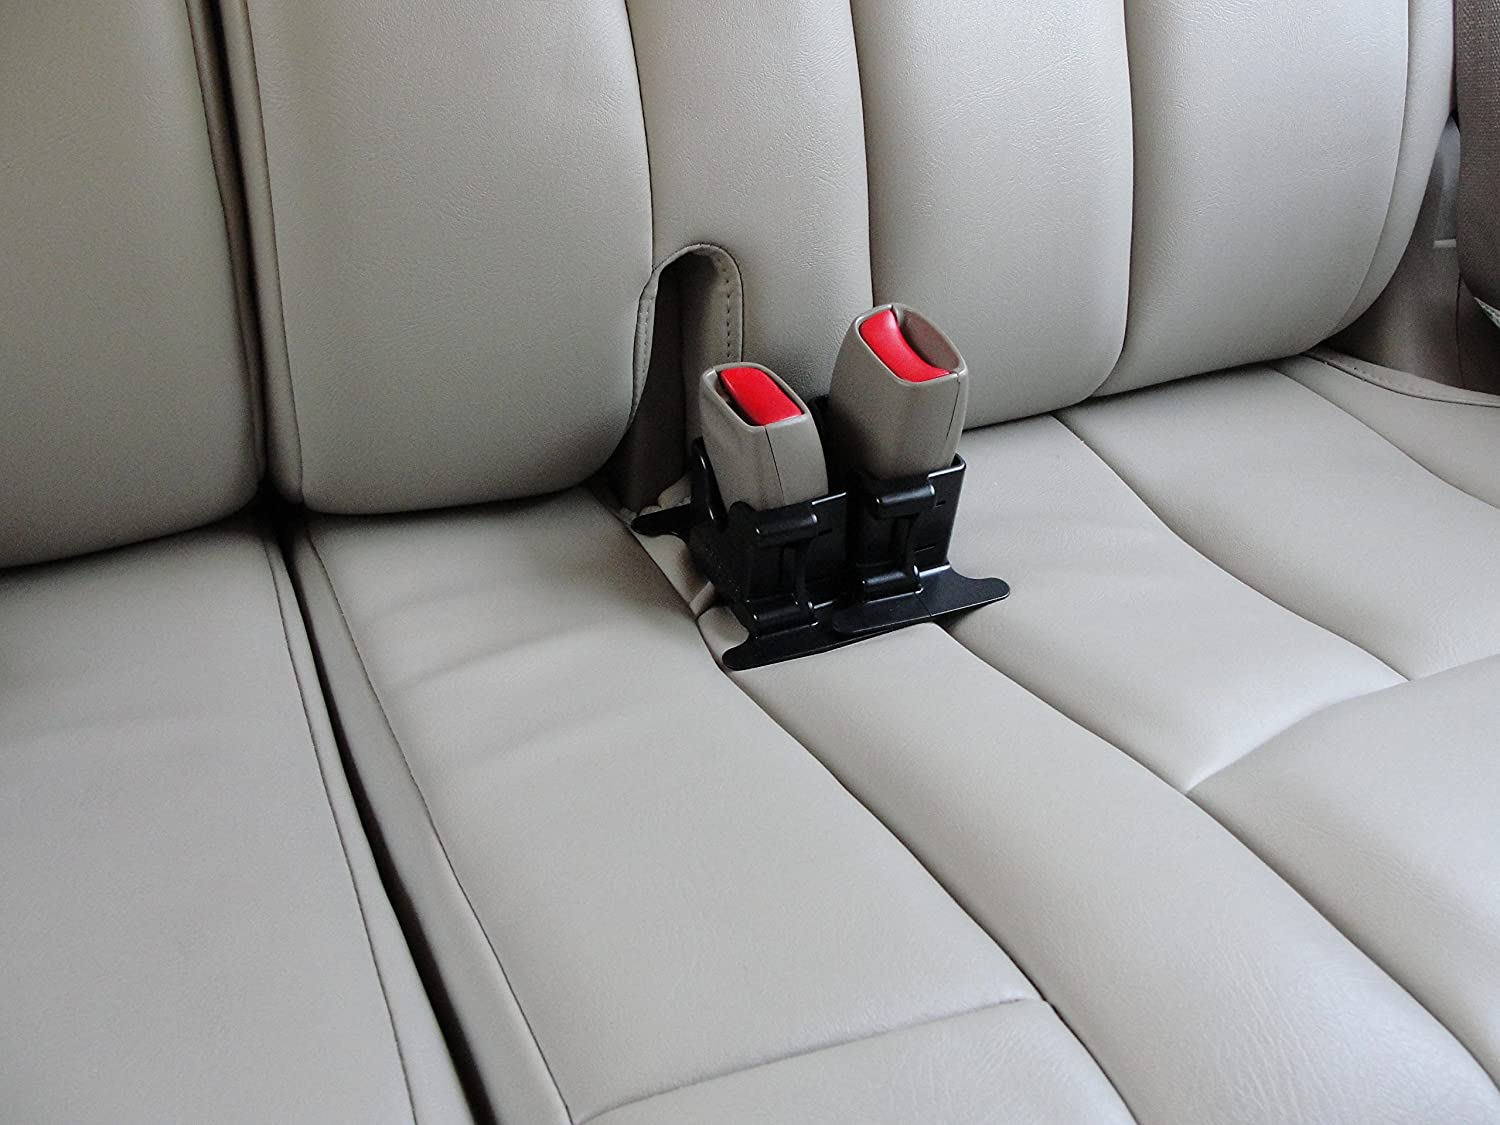 Saturn Vue Car Seats